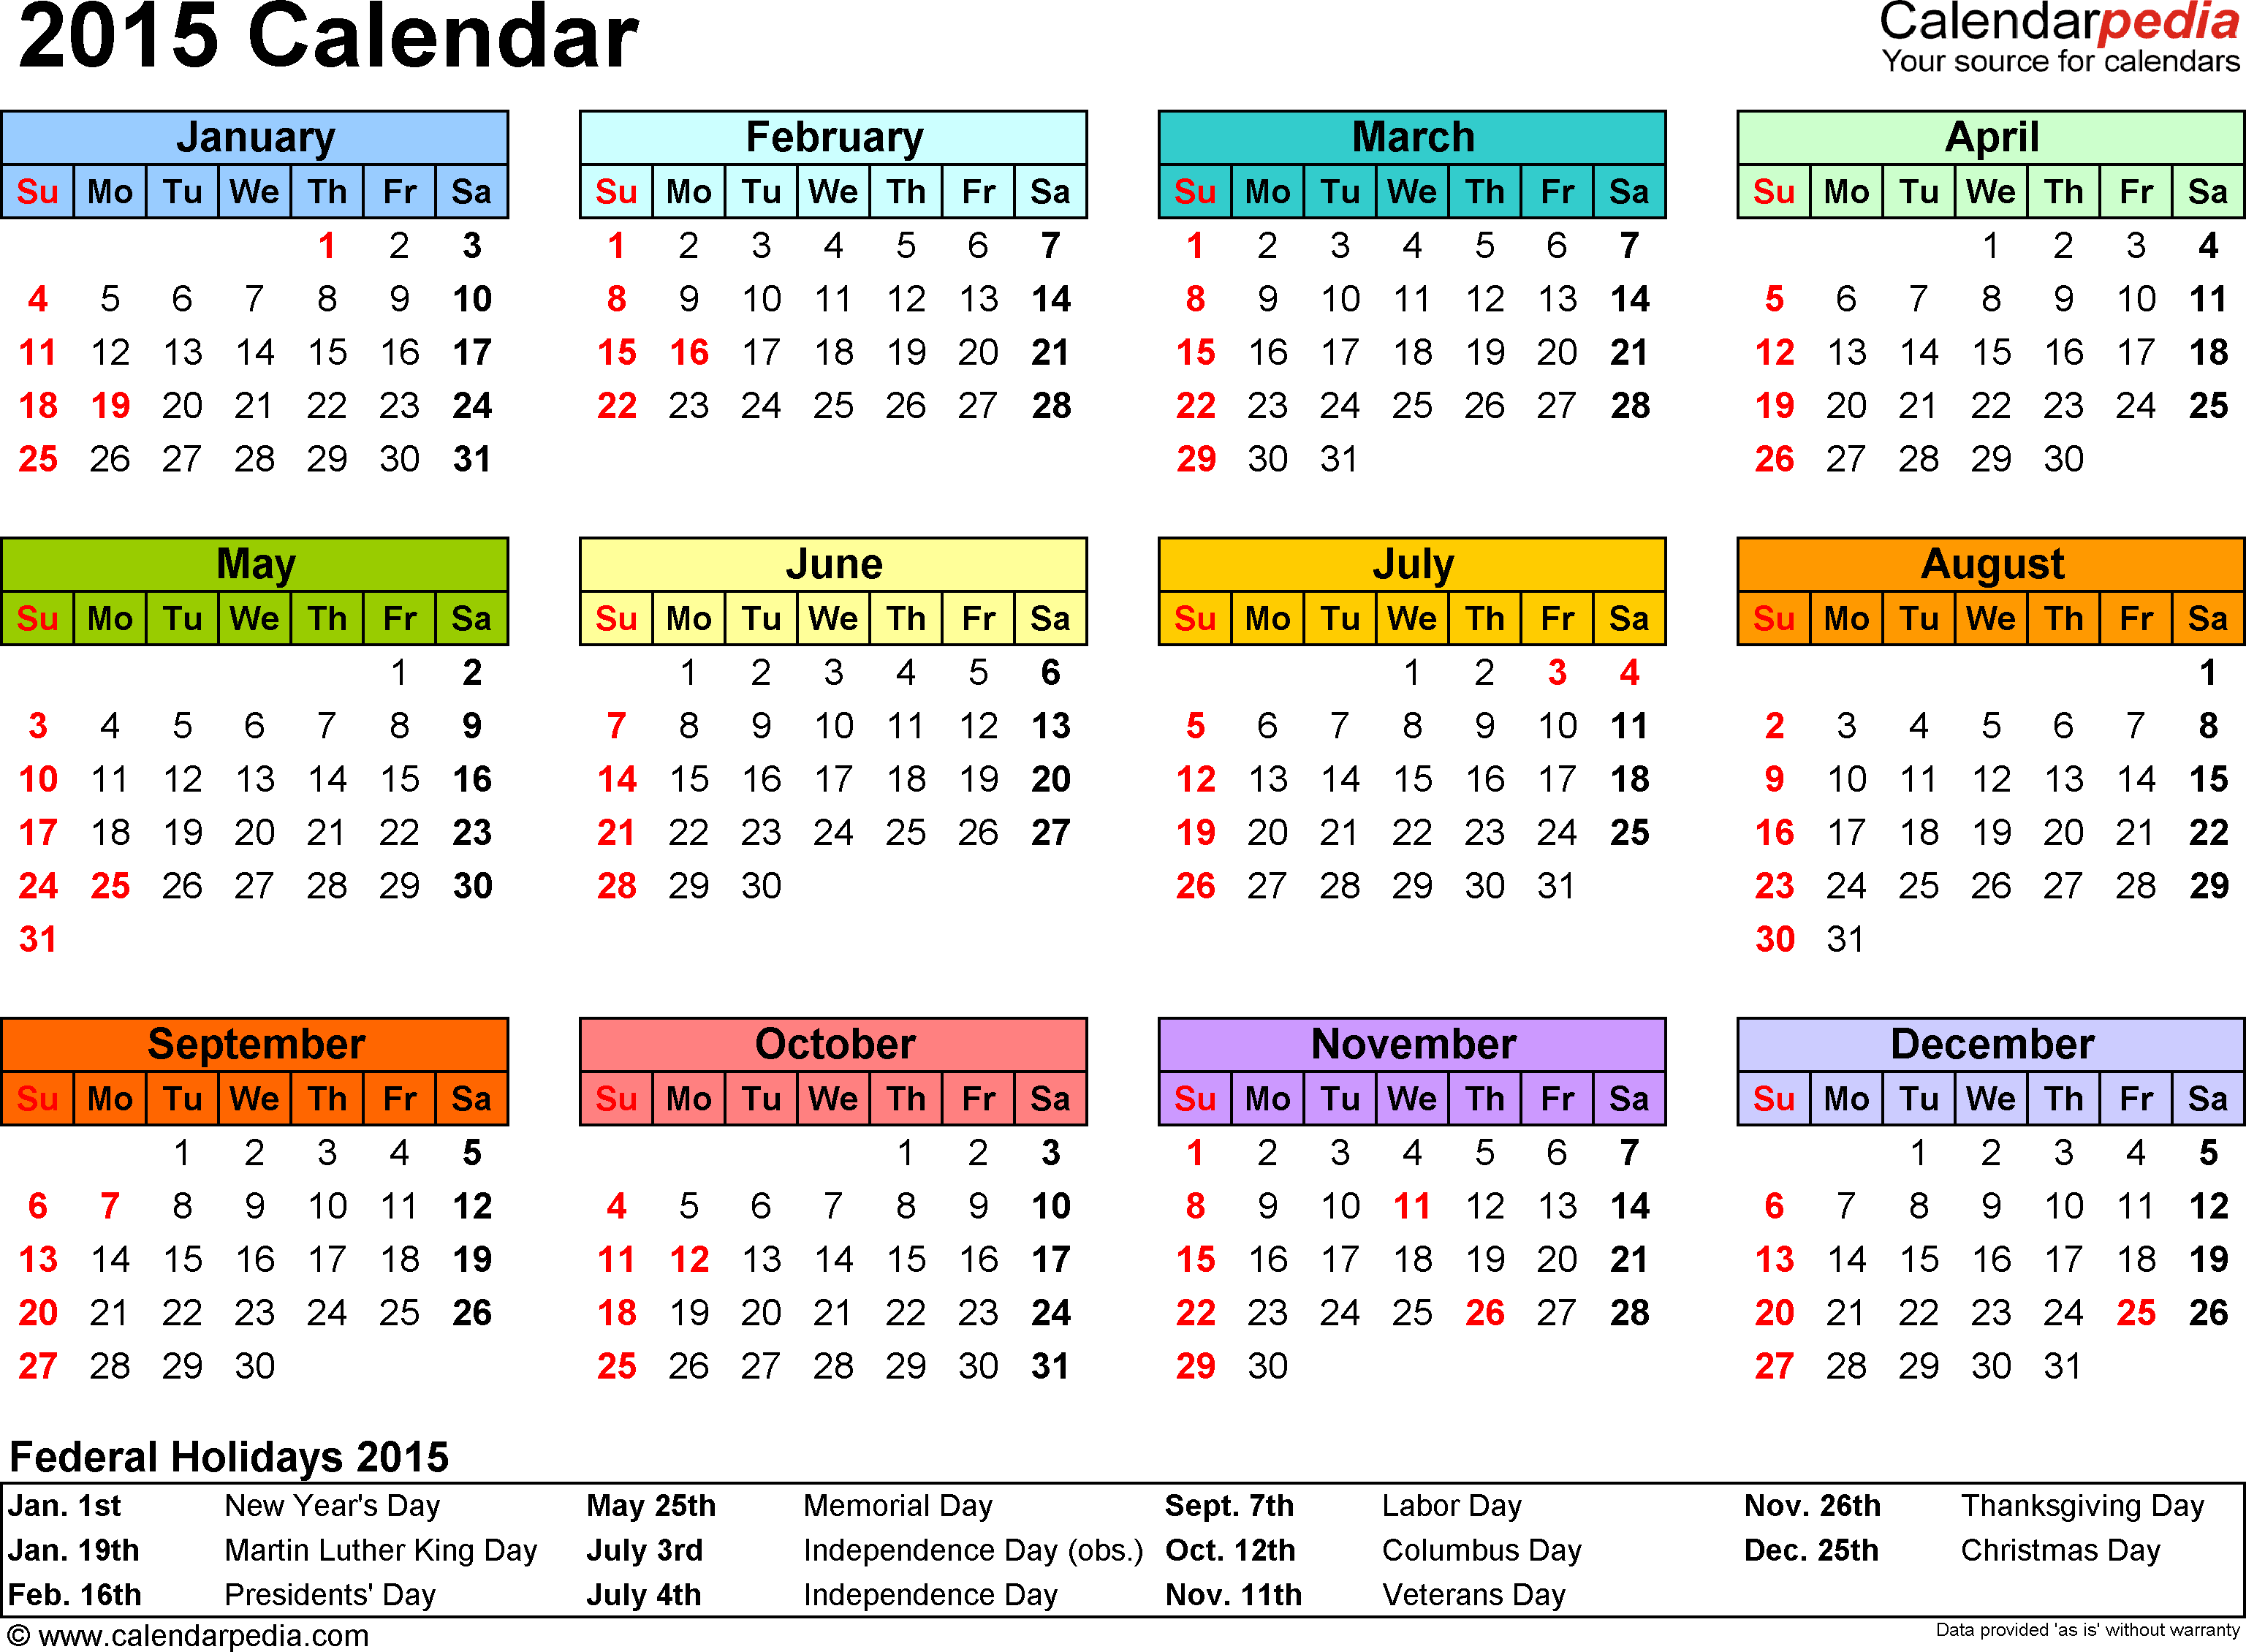 Template 7: 2015 Calendar for PDF, year at a glance, 1 page, in color